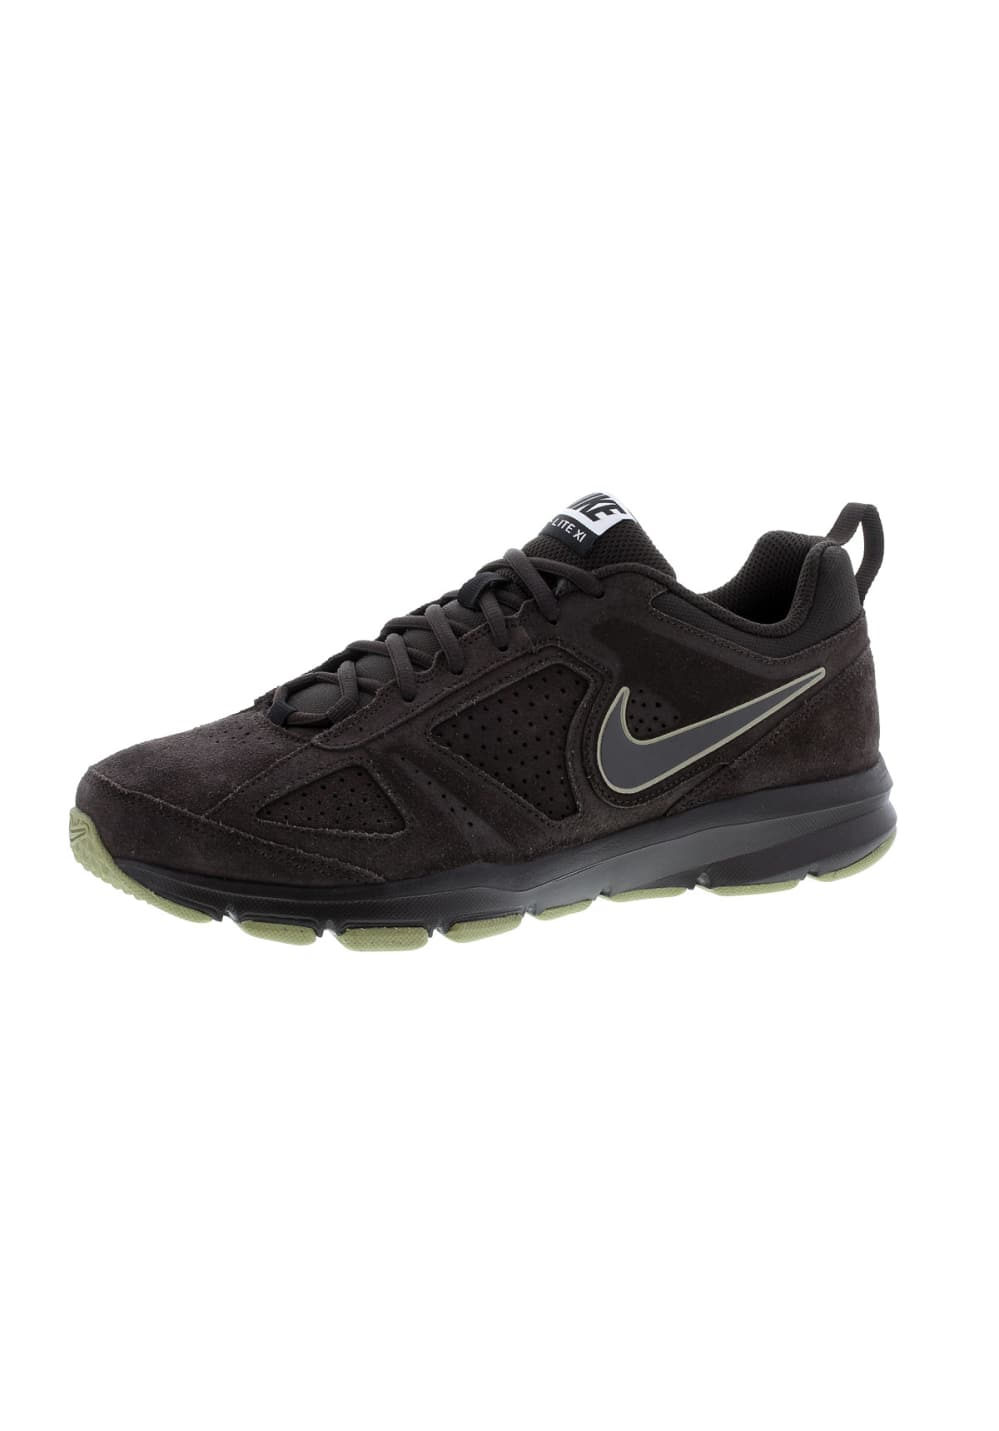 T Marron21run Xi Nike Lite Fitness Pour Chaussures Nubuck Homme D2E9HeYIW